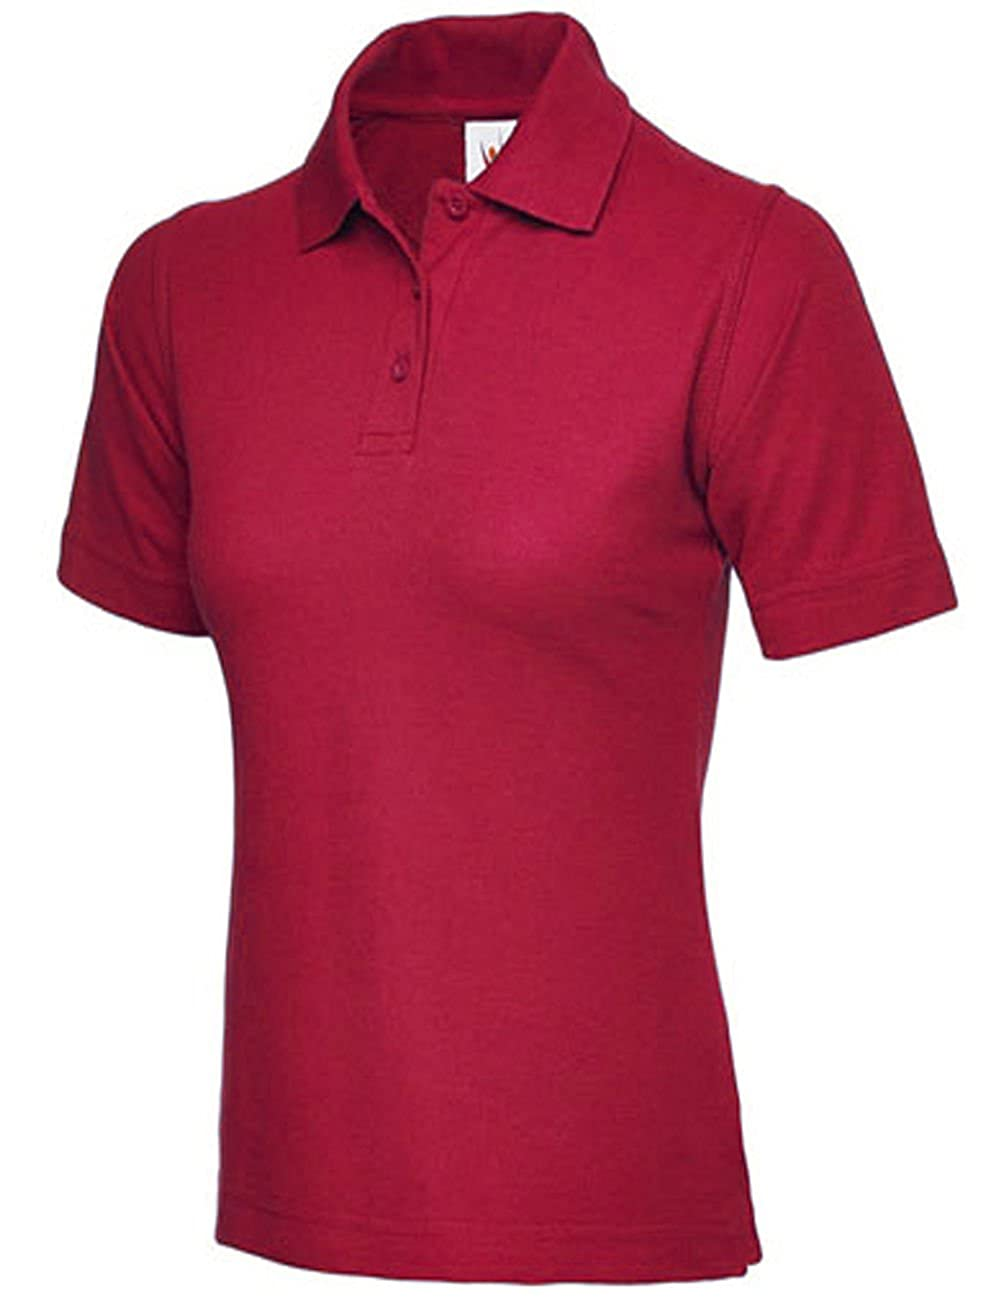 95e43962bb6 Ladies Pique Polo Shirt Size UK 8 to 26 Plus All Colours NEW Casual Sports  Gym Work  Amazon.co.uk  Clothing